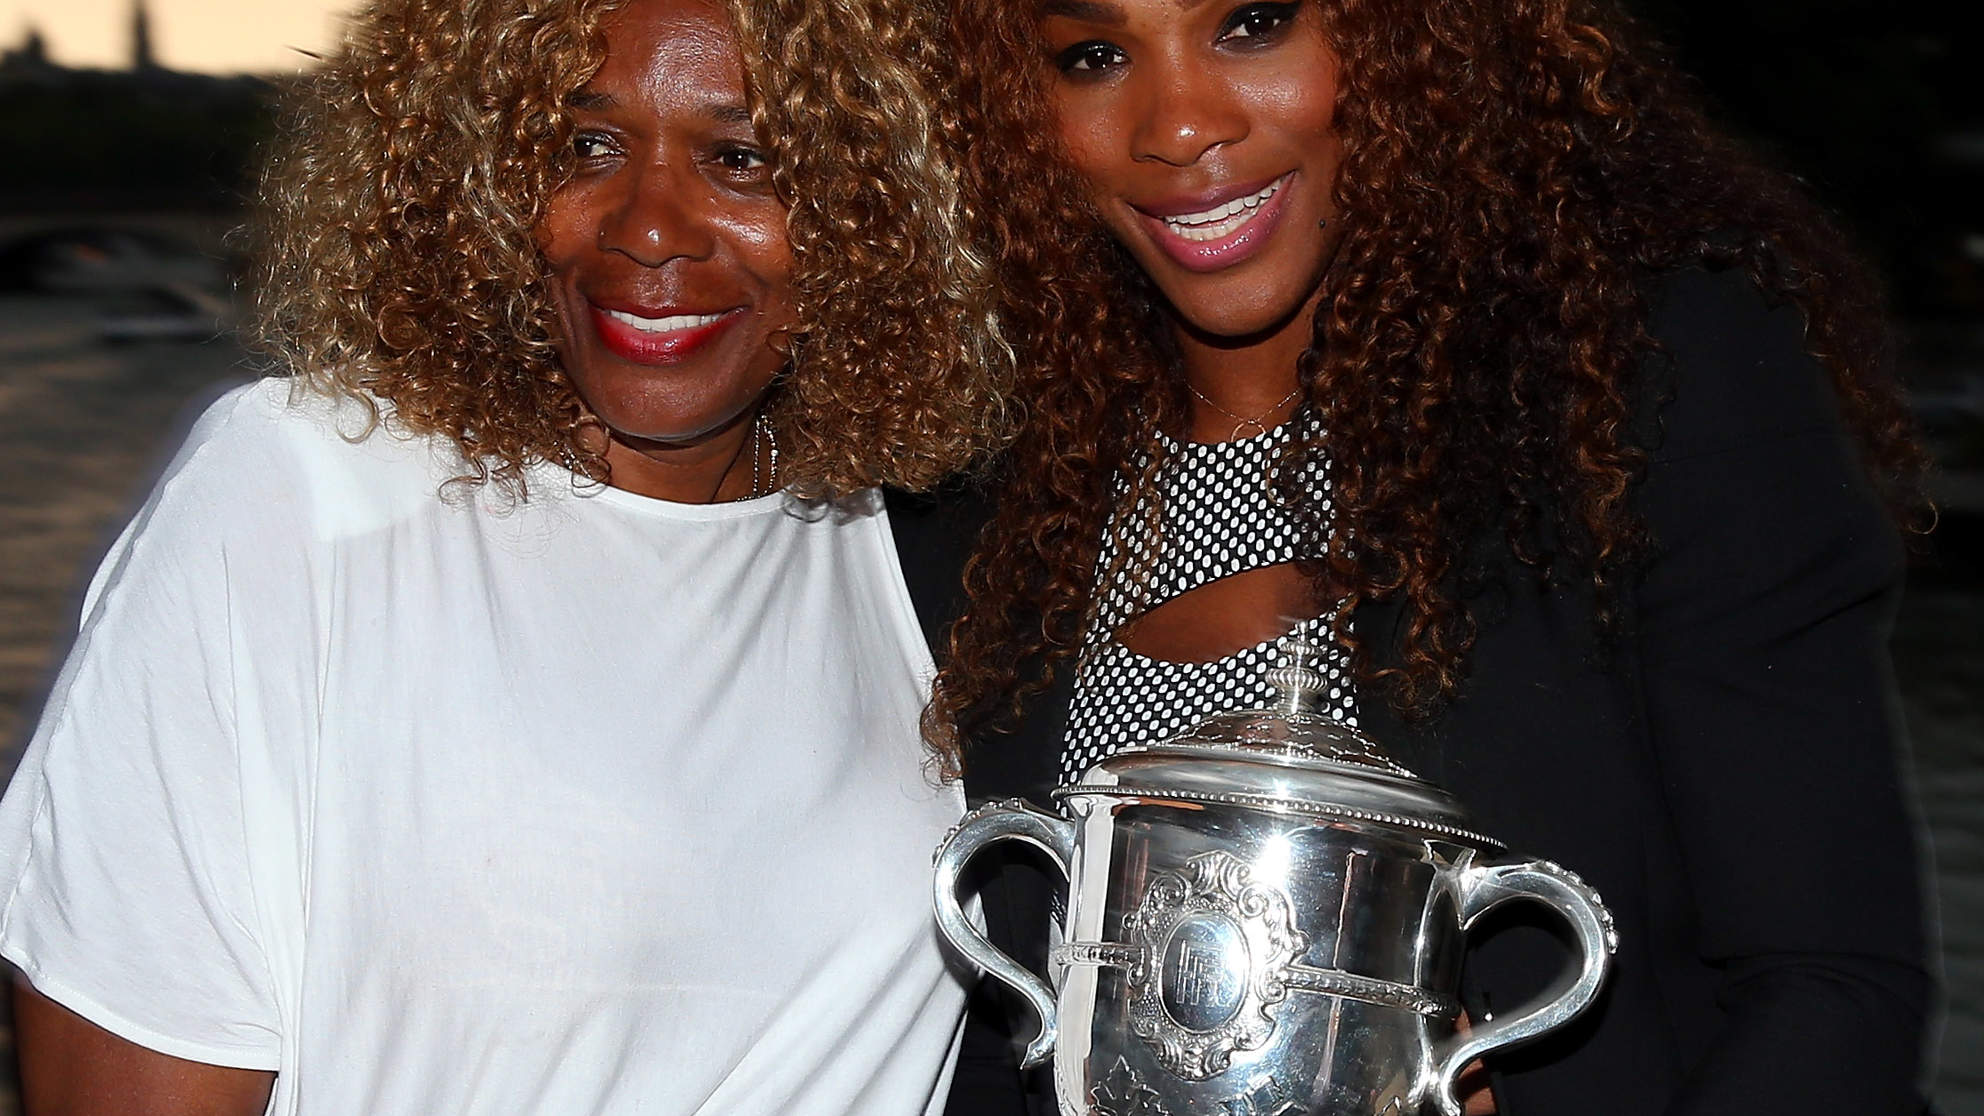 New Mom Serena Williams Pens Emotional Letter to Her Own Mother: I Hope to 'Have the Same Fortitude You Have Had'